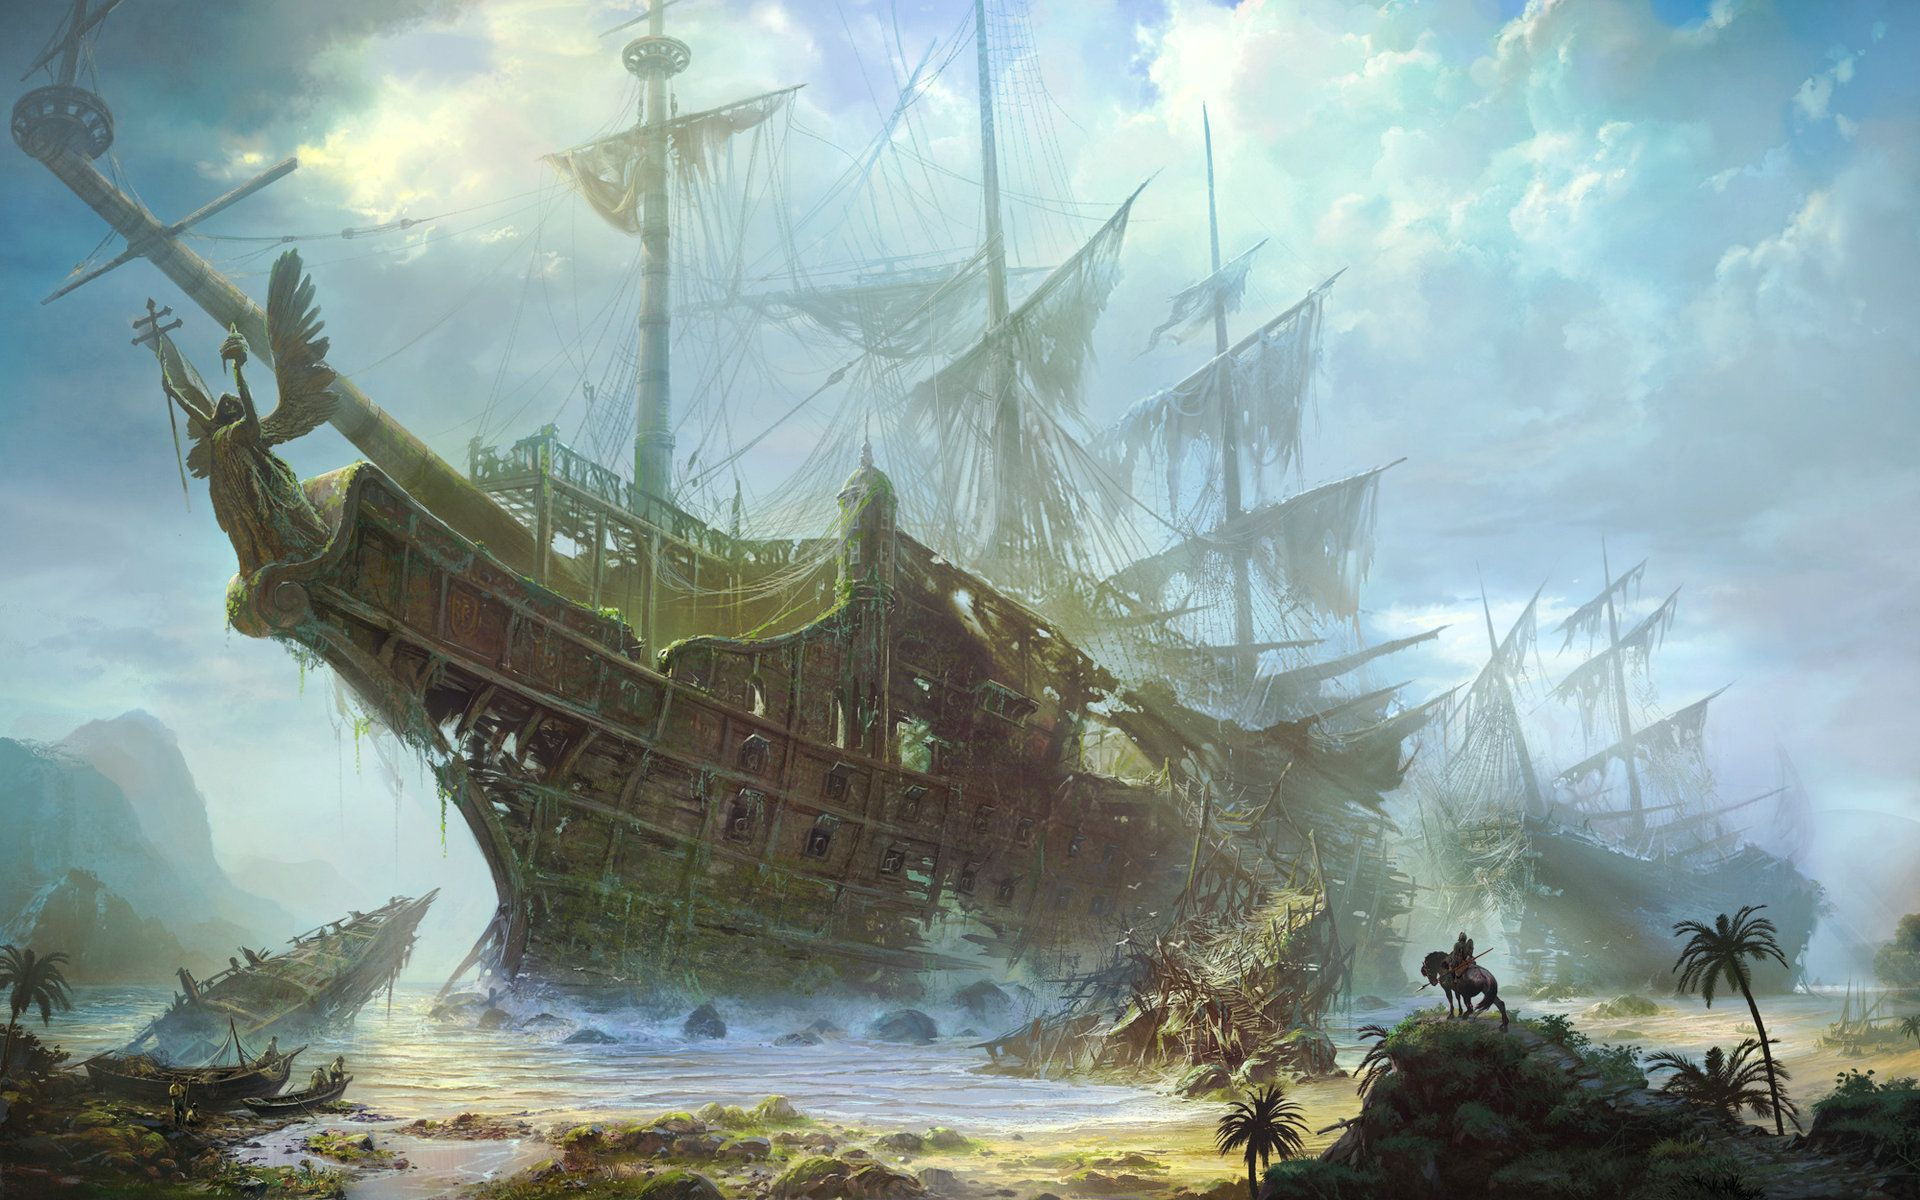 Wallpapers For Pirate Ship Wallpaper 1280x1024 1920x1200